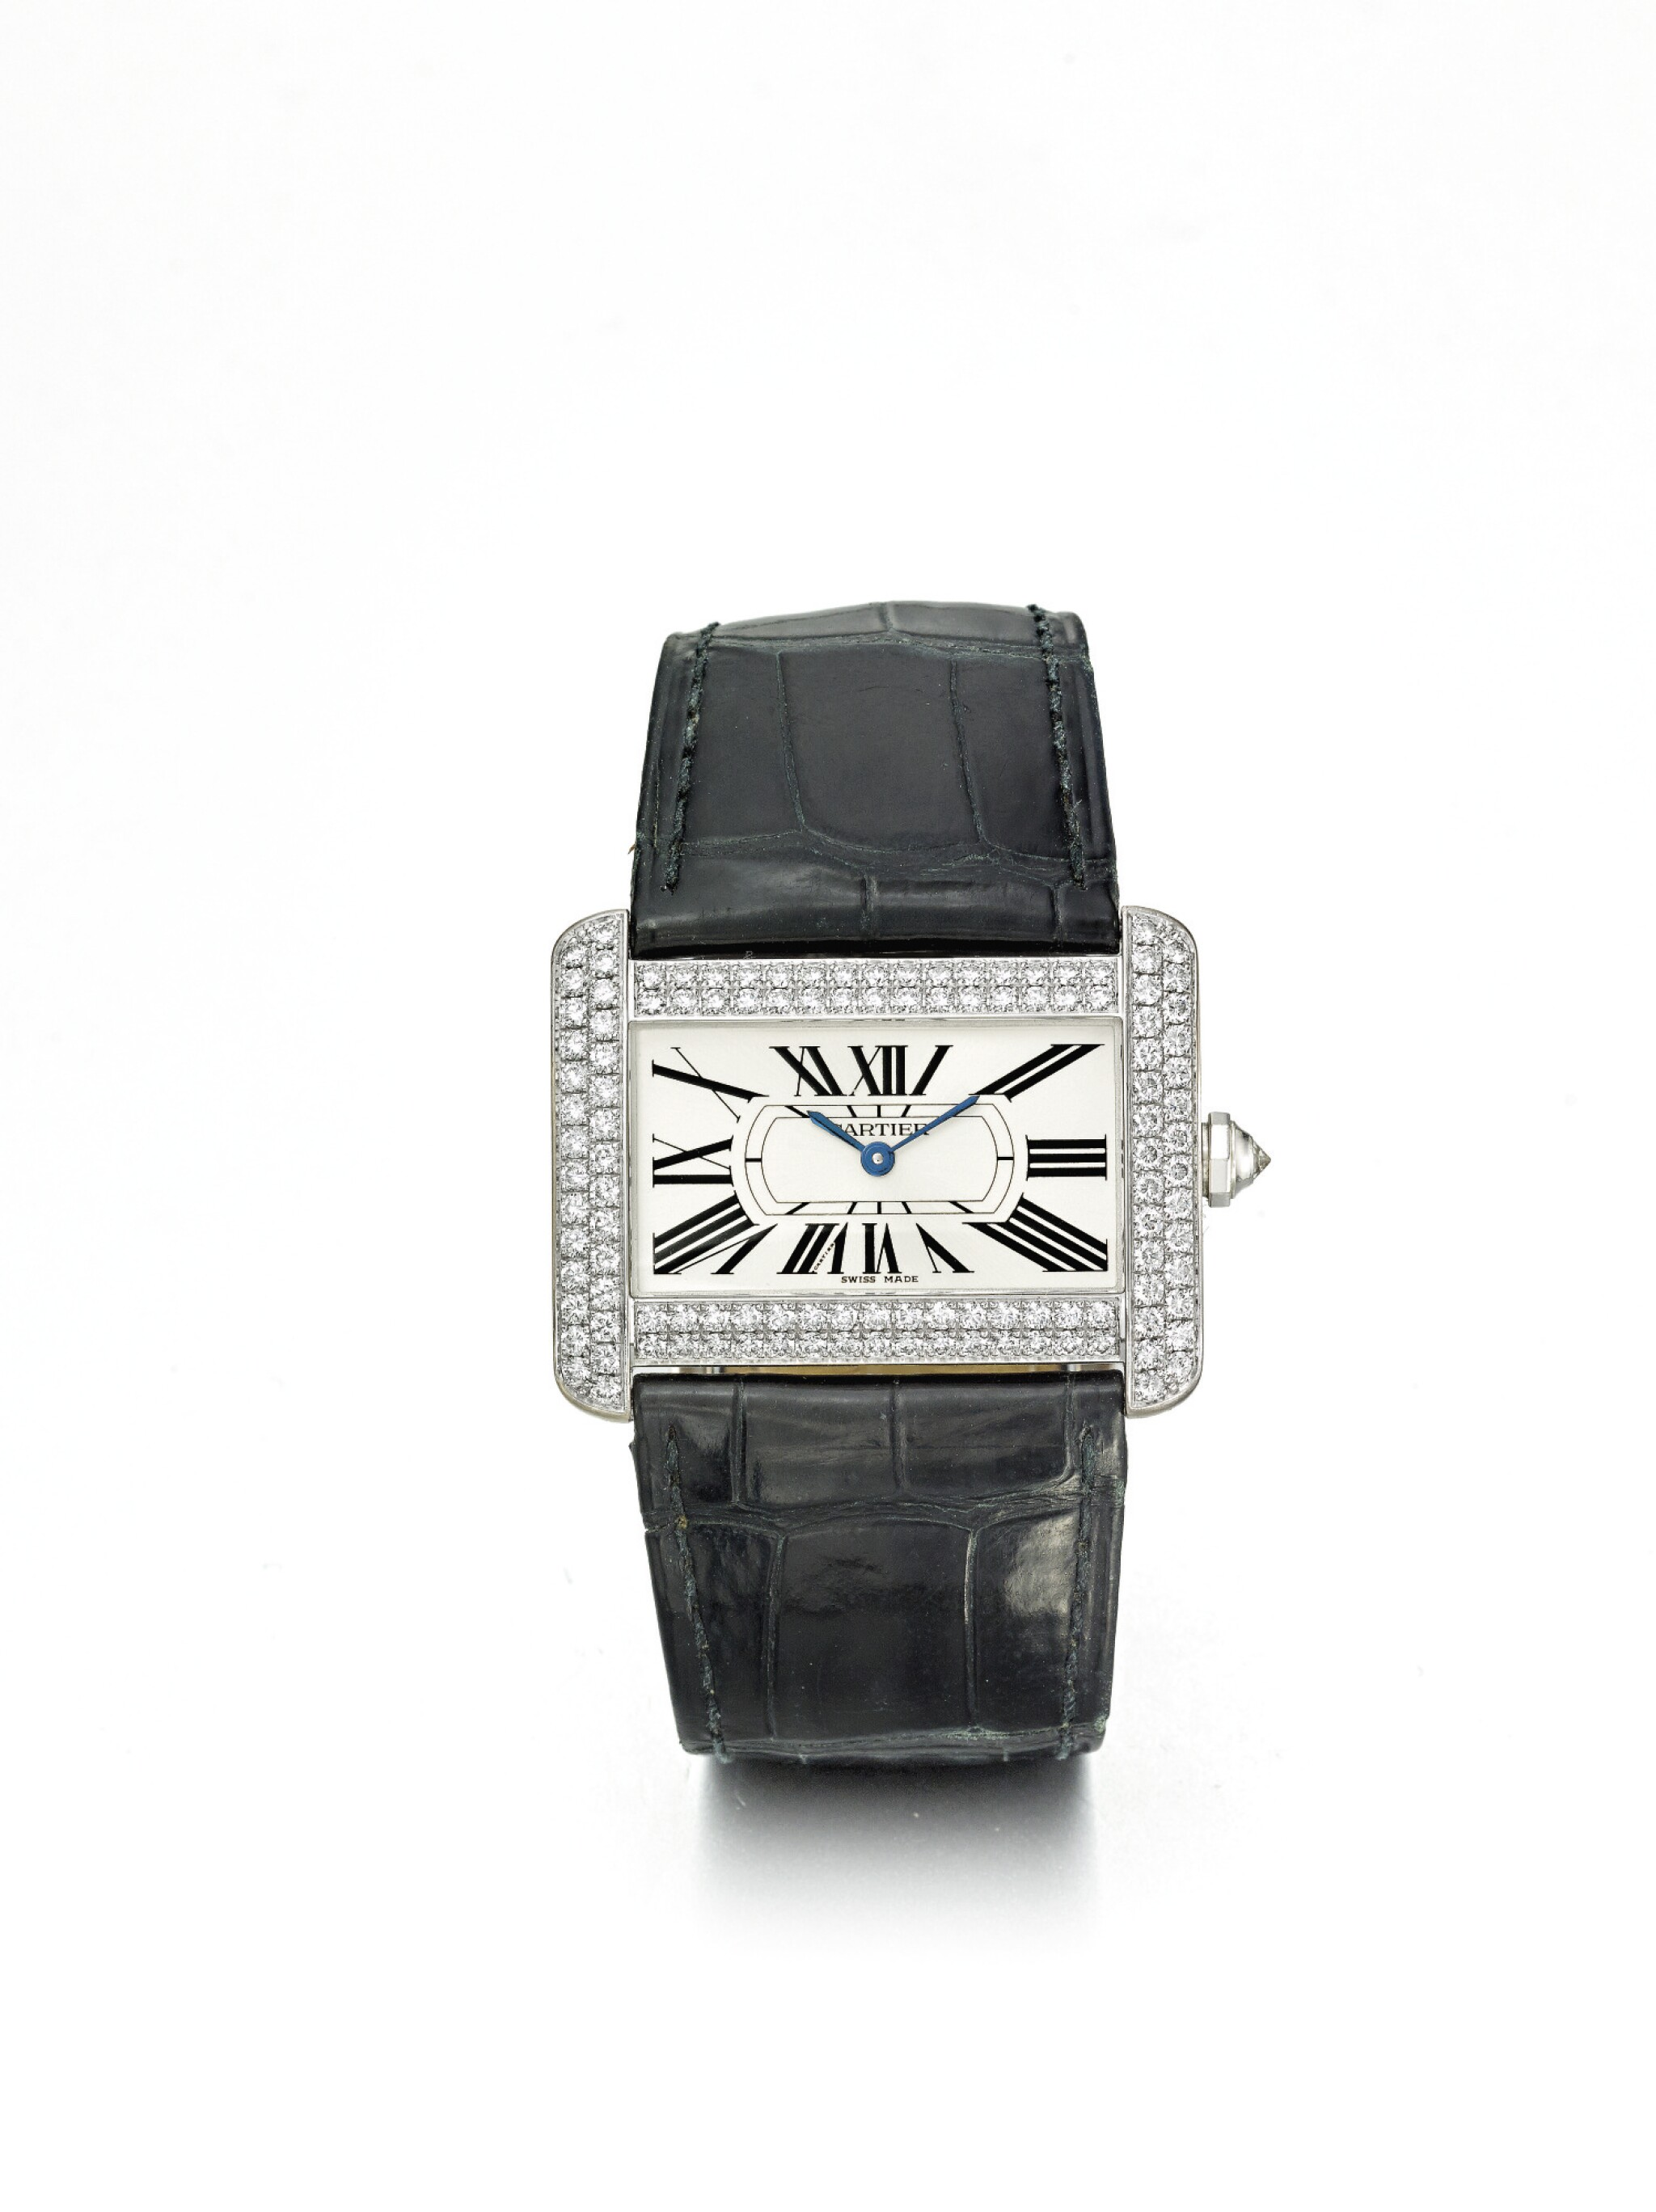 CARTIER | TANK DIVAN REF 2614 A WHITE GOLD AND DIAMOND SET RECTANGULAR WRISTWATCH CIRCA 2008